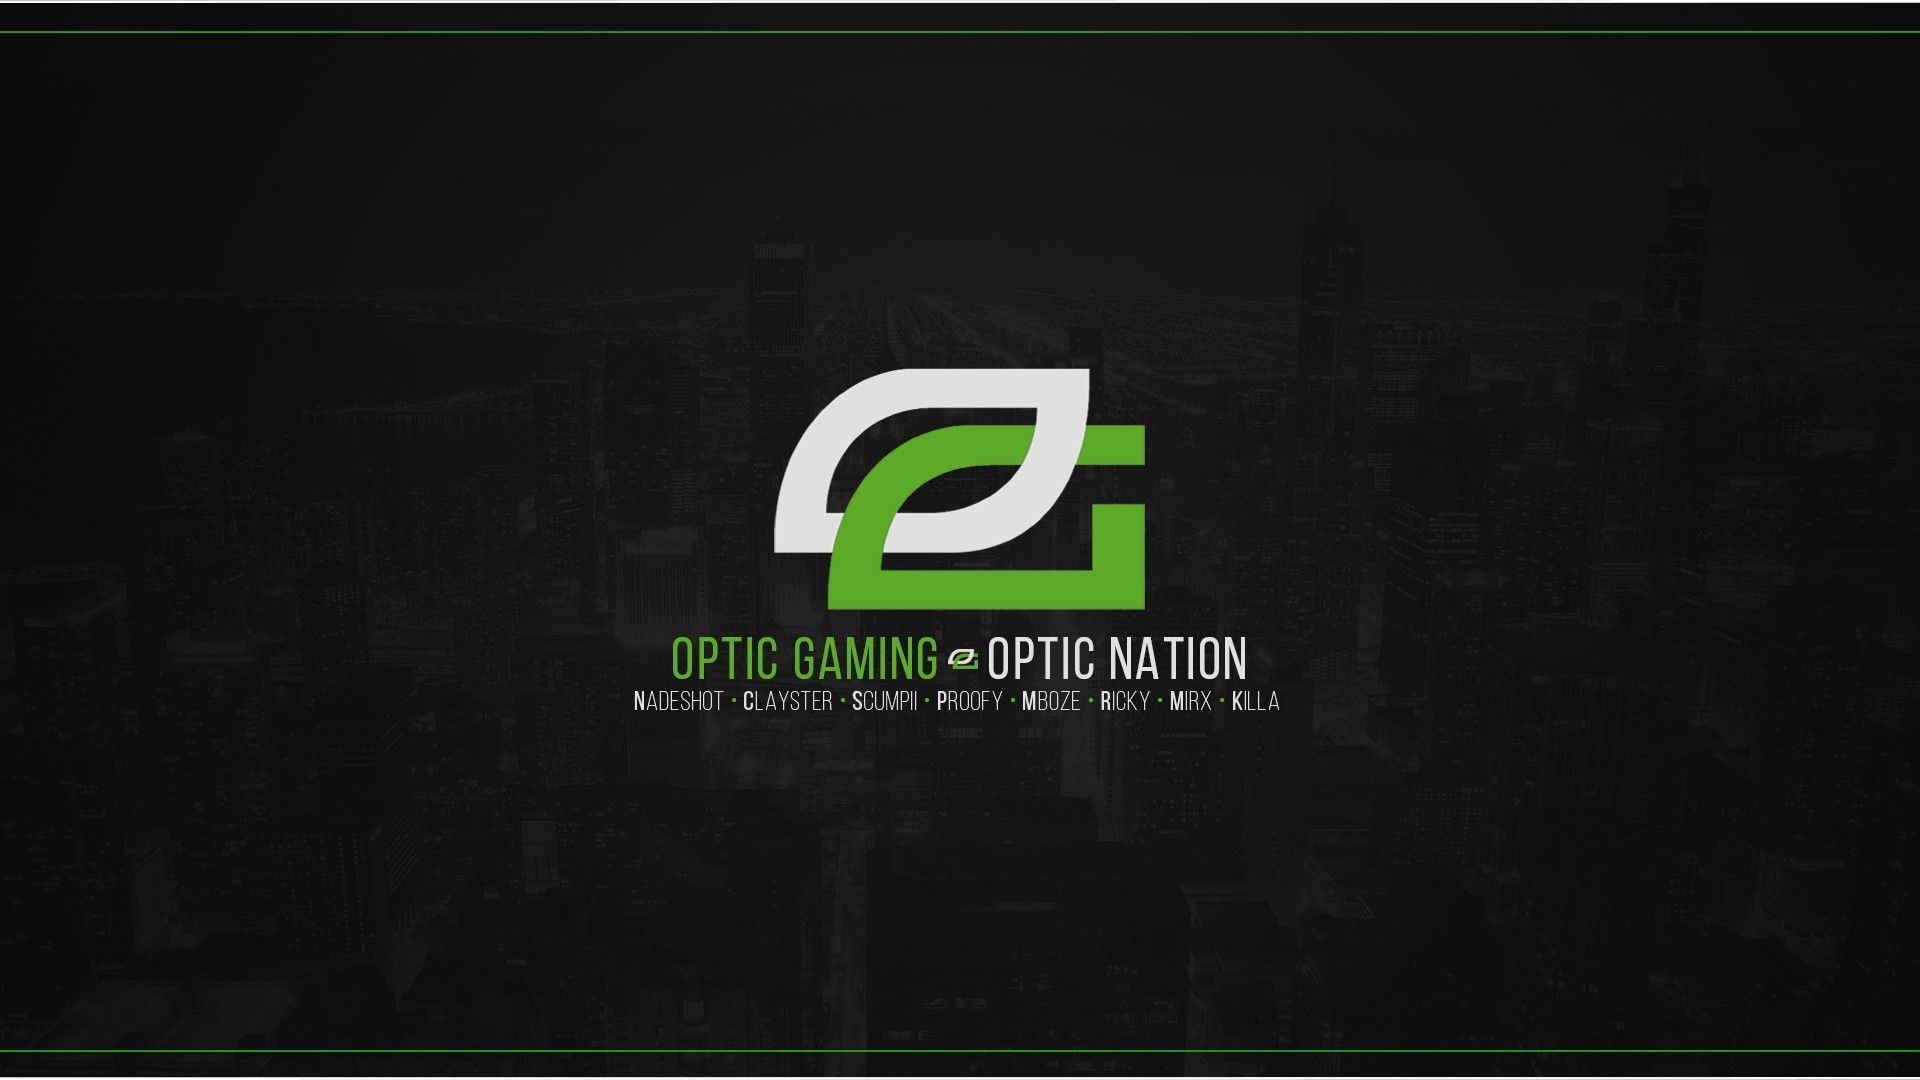 Undefined Wallpaper Gaming 55 Wallpapers Adorable Wallpapers Gaming Wallpapers Optic Gaming Samsung Wallpaper